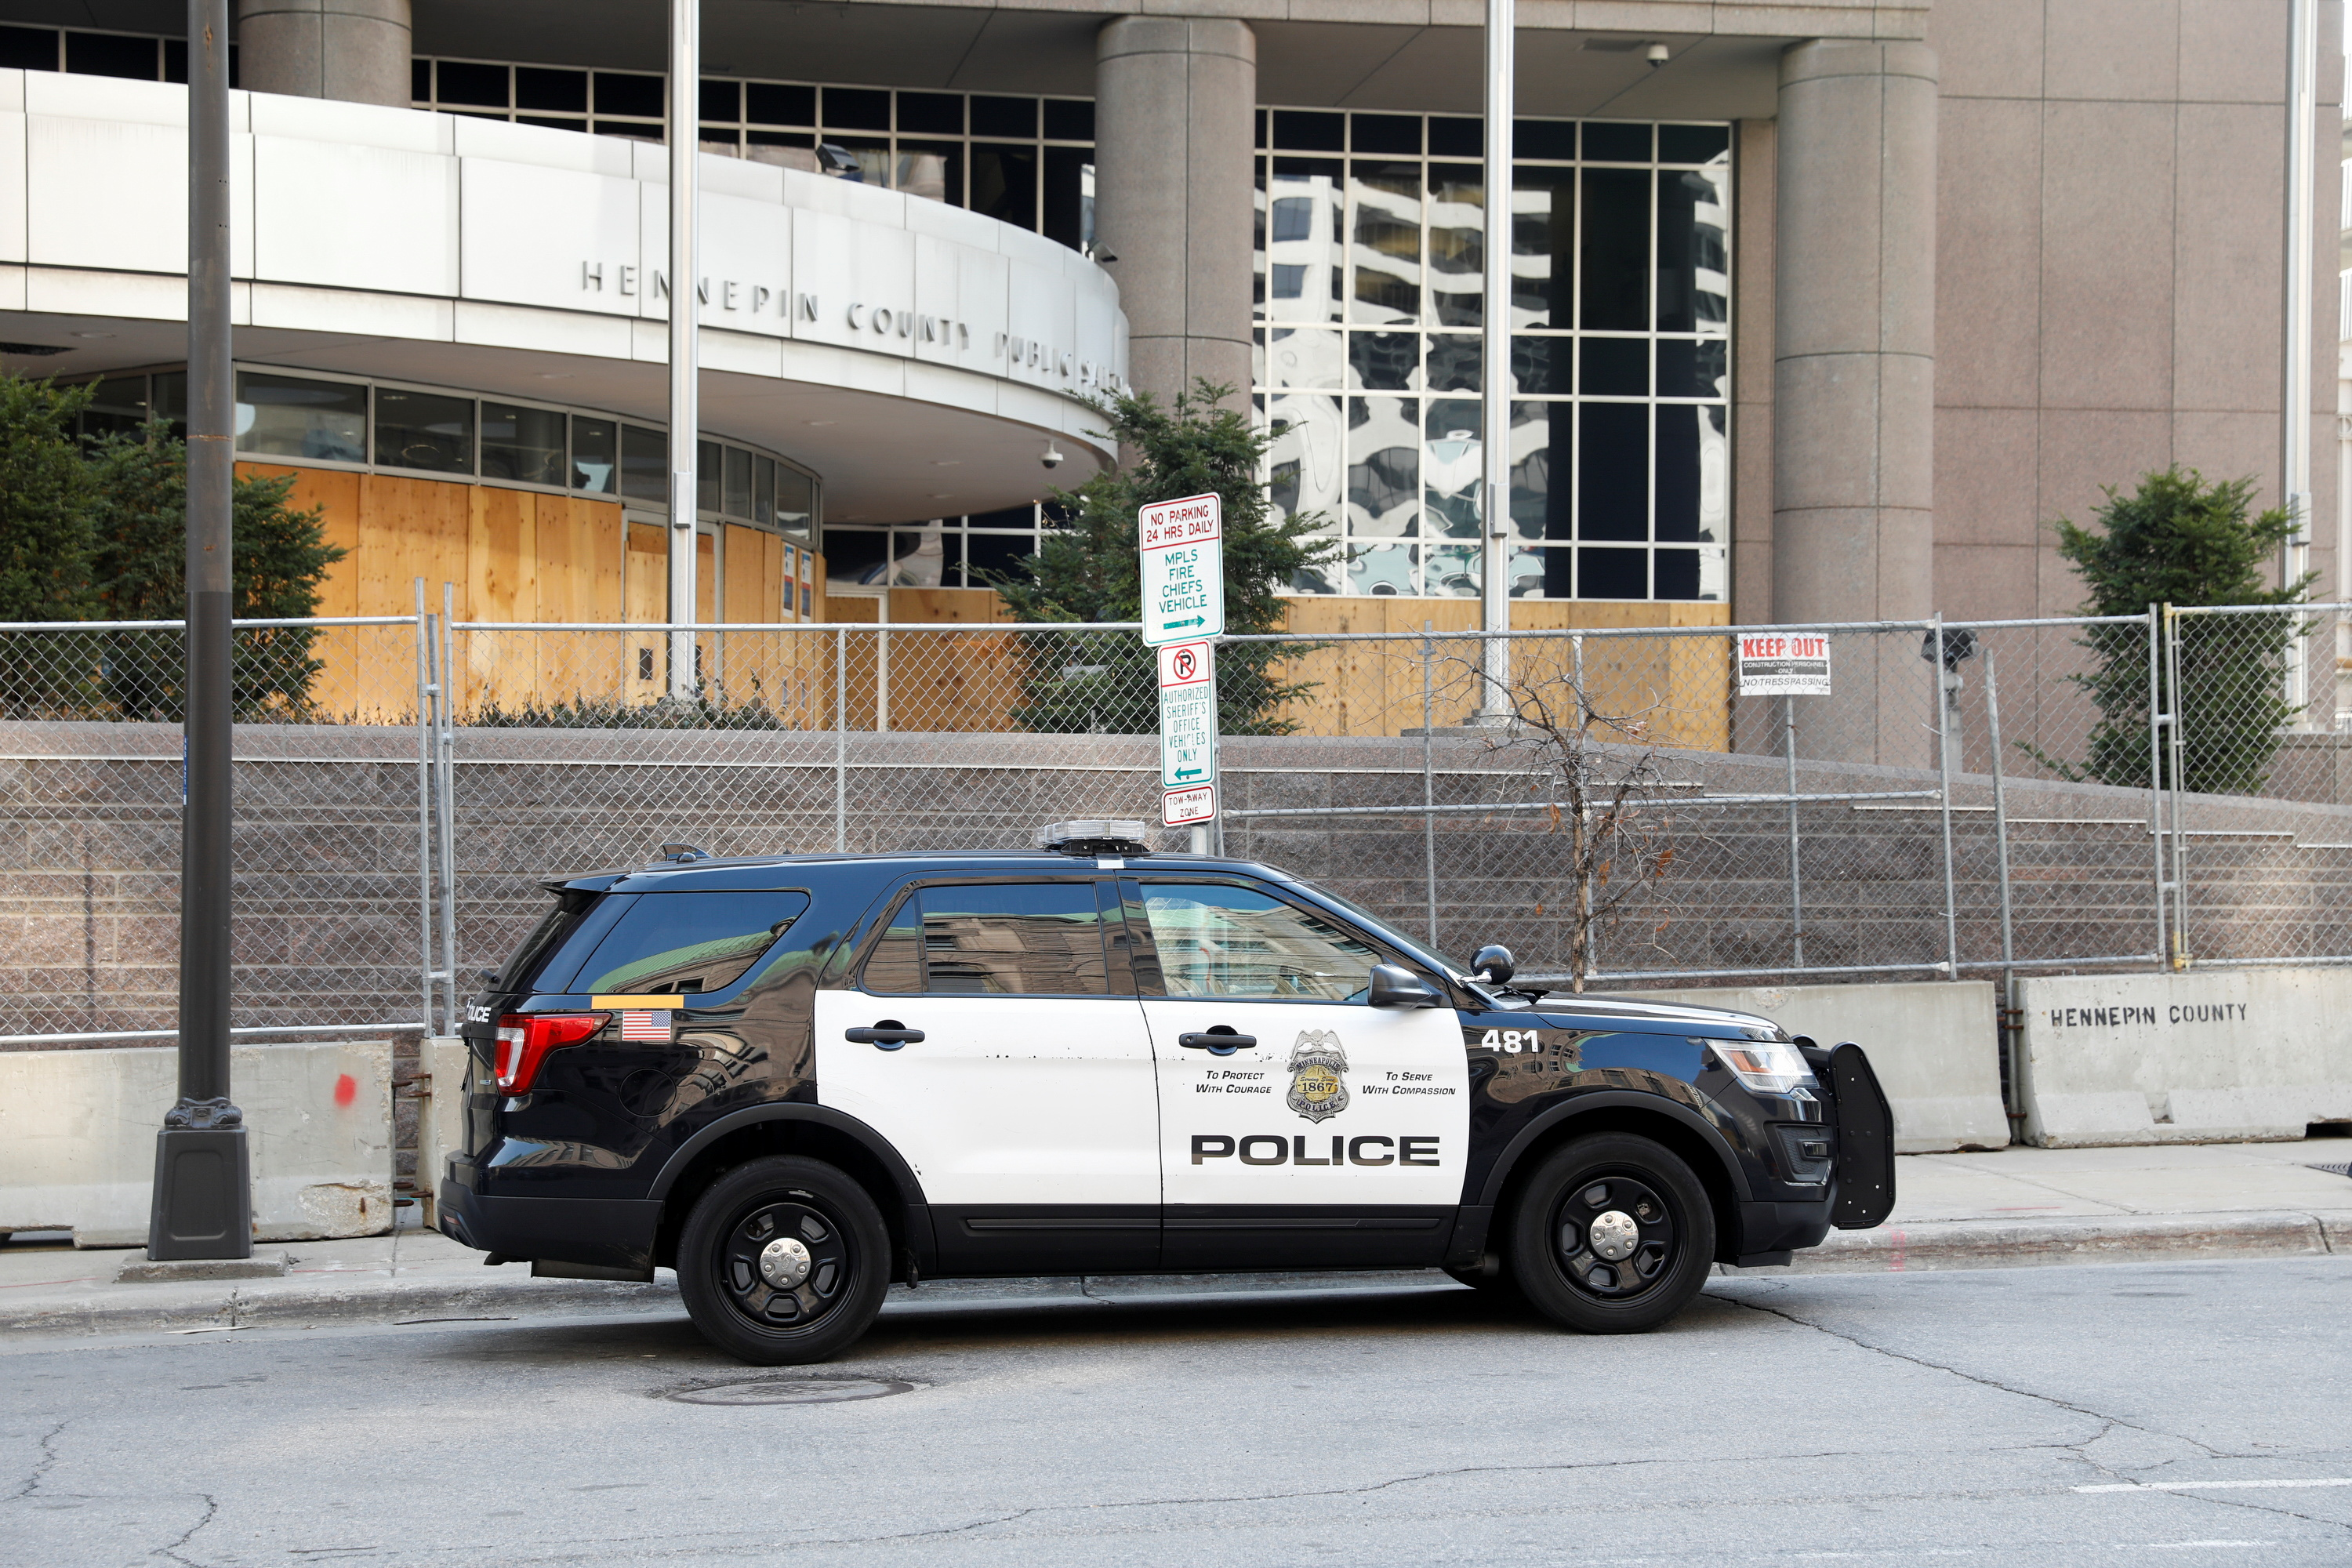 A Minneapolis Police Department vehicle is parked near the a boarded up Hennepin County Public Safety Facility, while the fifth day of trial continues for Derek Chauvin, who is facing murder charges in the death of George Floyd, in Minneapolis, Minnesota, U.S., April 2, 2021. REUTERS/Octavio Jones